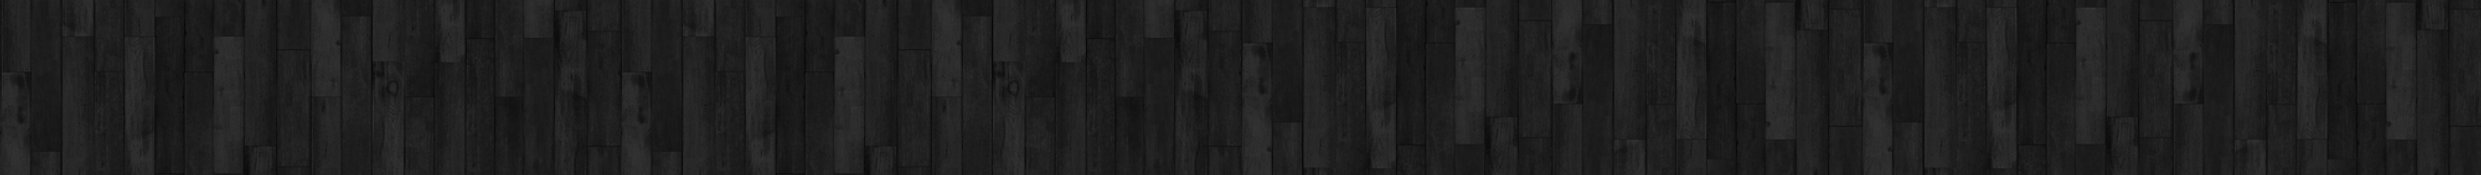 Black Barn Wood Header copy.jpg